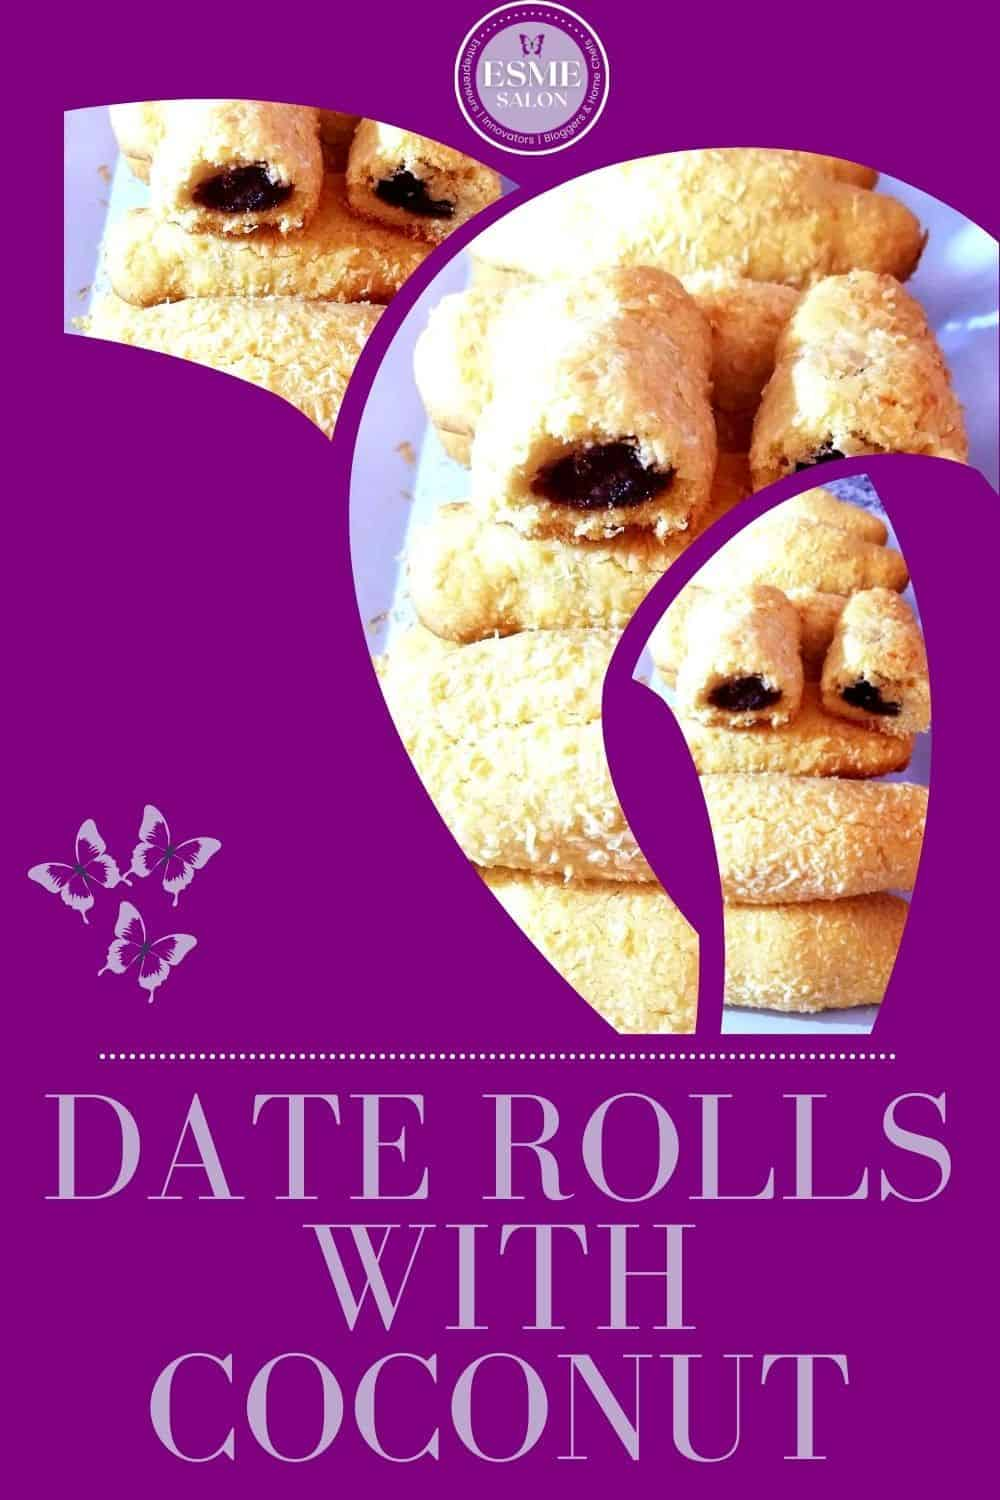 Date Rolls with Coconut